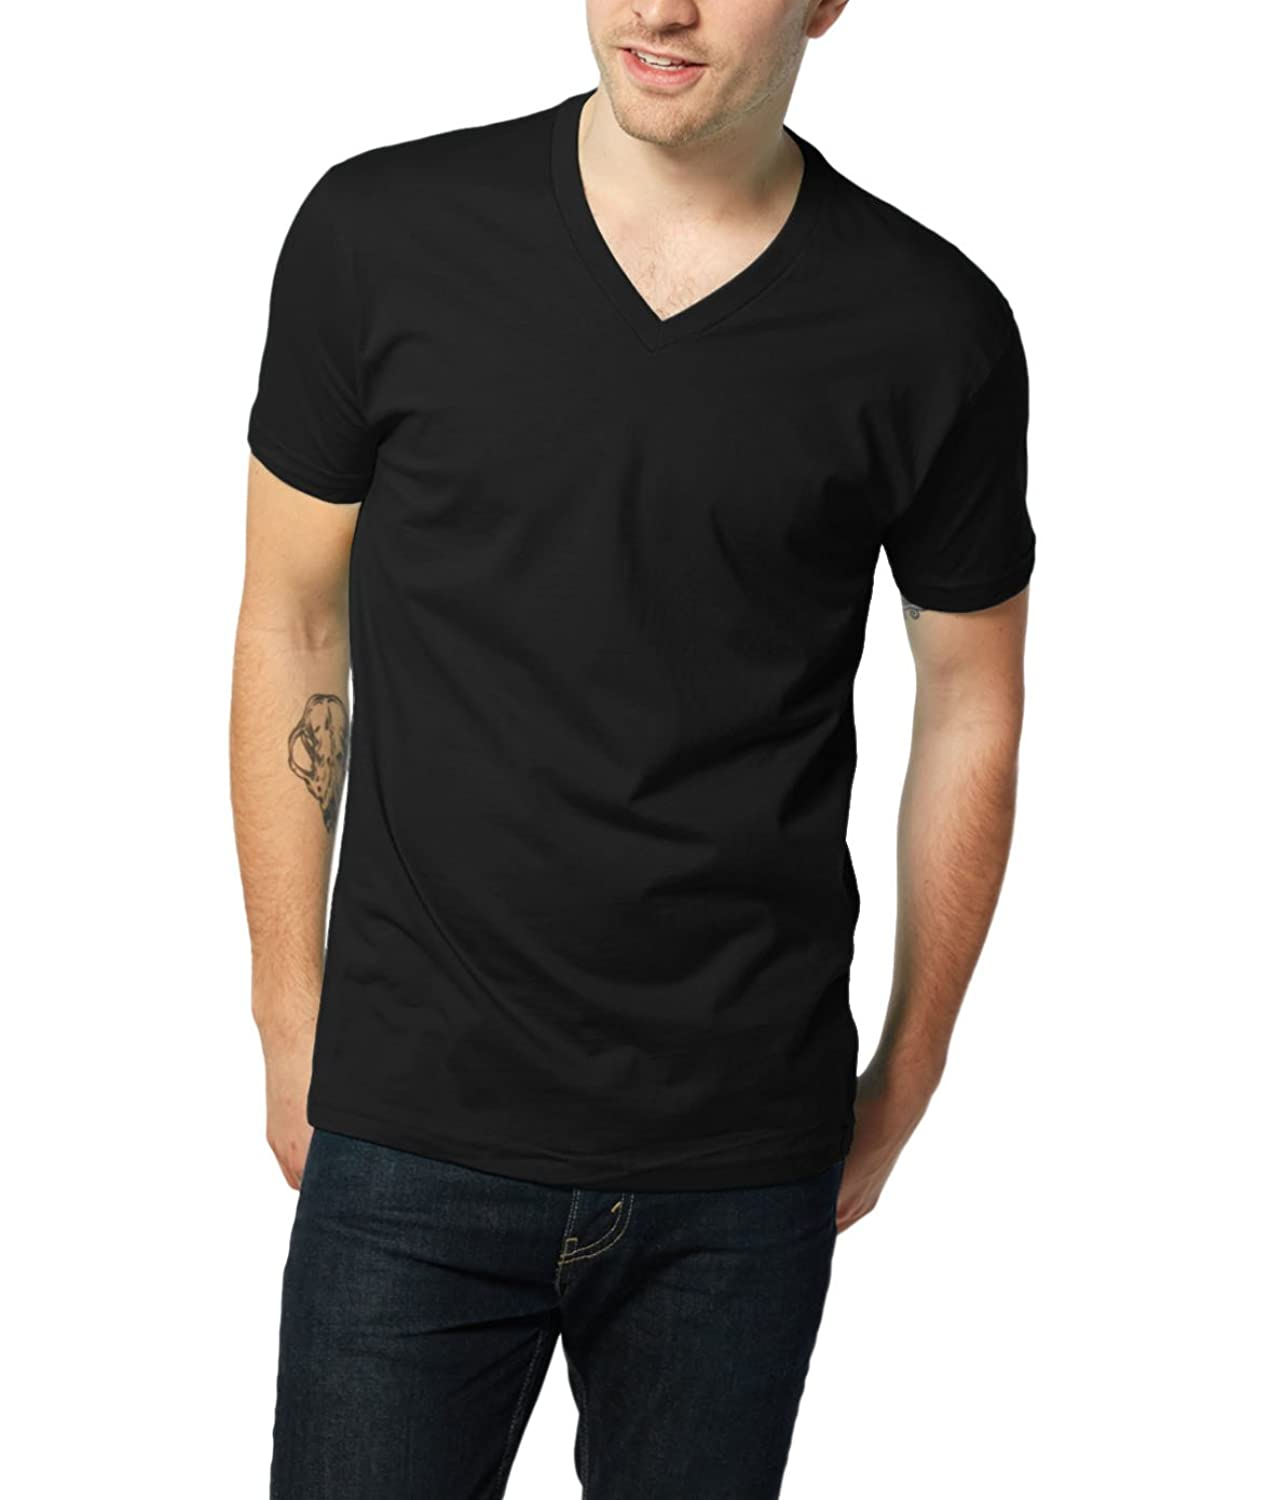 a4034296a3f 30%OFF Ridiculously Soft V-Neck by NAYKED · 80%OFF DALLAS COWBOYS ...